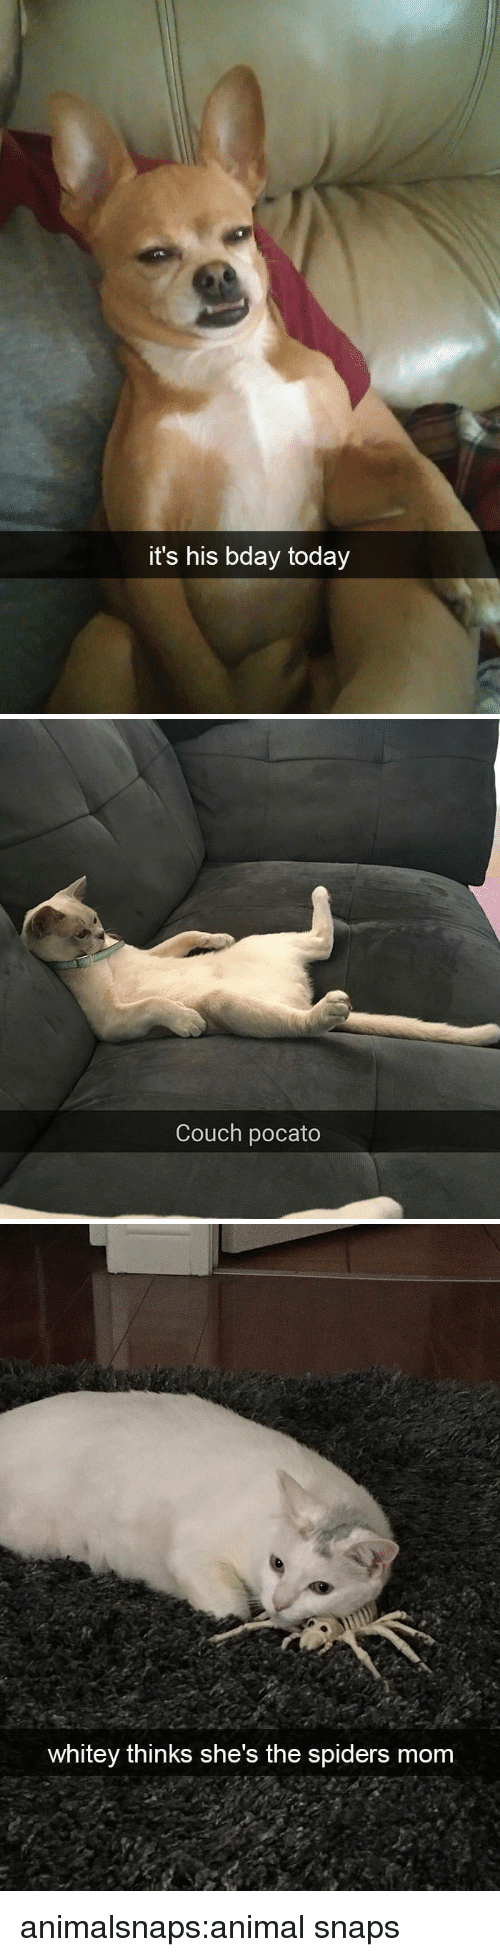 Target, Tumblr, and Animal: it's his bday today   Couch pocato   whitey thinks she's the spiders mom animalsnaps:animal snaps